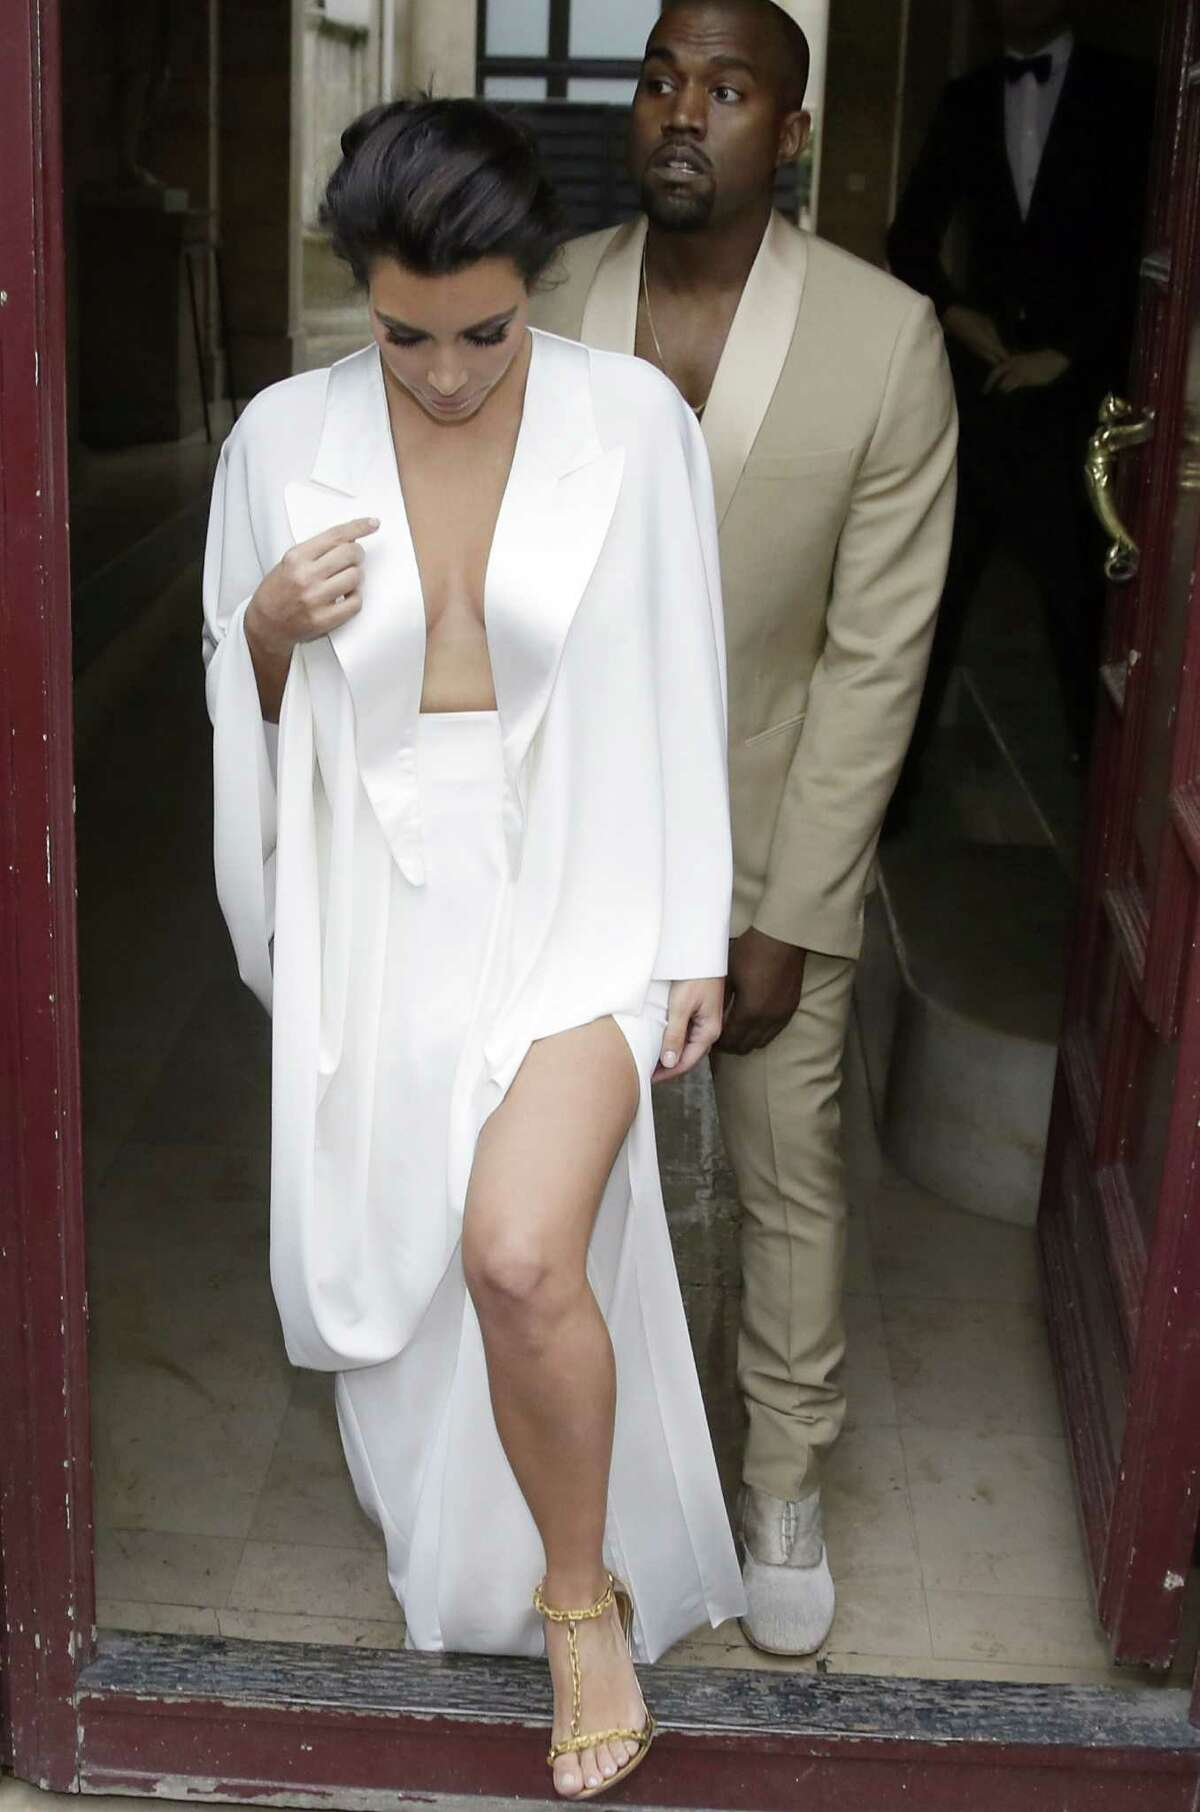 Kim Kardashian and Kanye West tied the knot over Memorial Day weekend in Florence, Italy. Being a musician himself, you know the music Kanye helped pick out for the matrimonial festivities was going to be good... even if it meant taking a hands-on approach. The first dance song? A mashup of 'At Last,' followed by 'These Arms of Mine,' and 'Tenderness.' But wait, there's more: the groom even busted out with a rap during the first dance.What's more, John Legend was on hand to sing his hit song 'All of Me' during the reception.Take a look at other celebrity power couples and the songs they got down to after saying